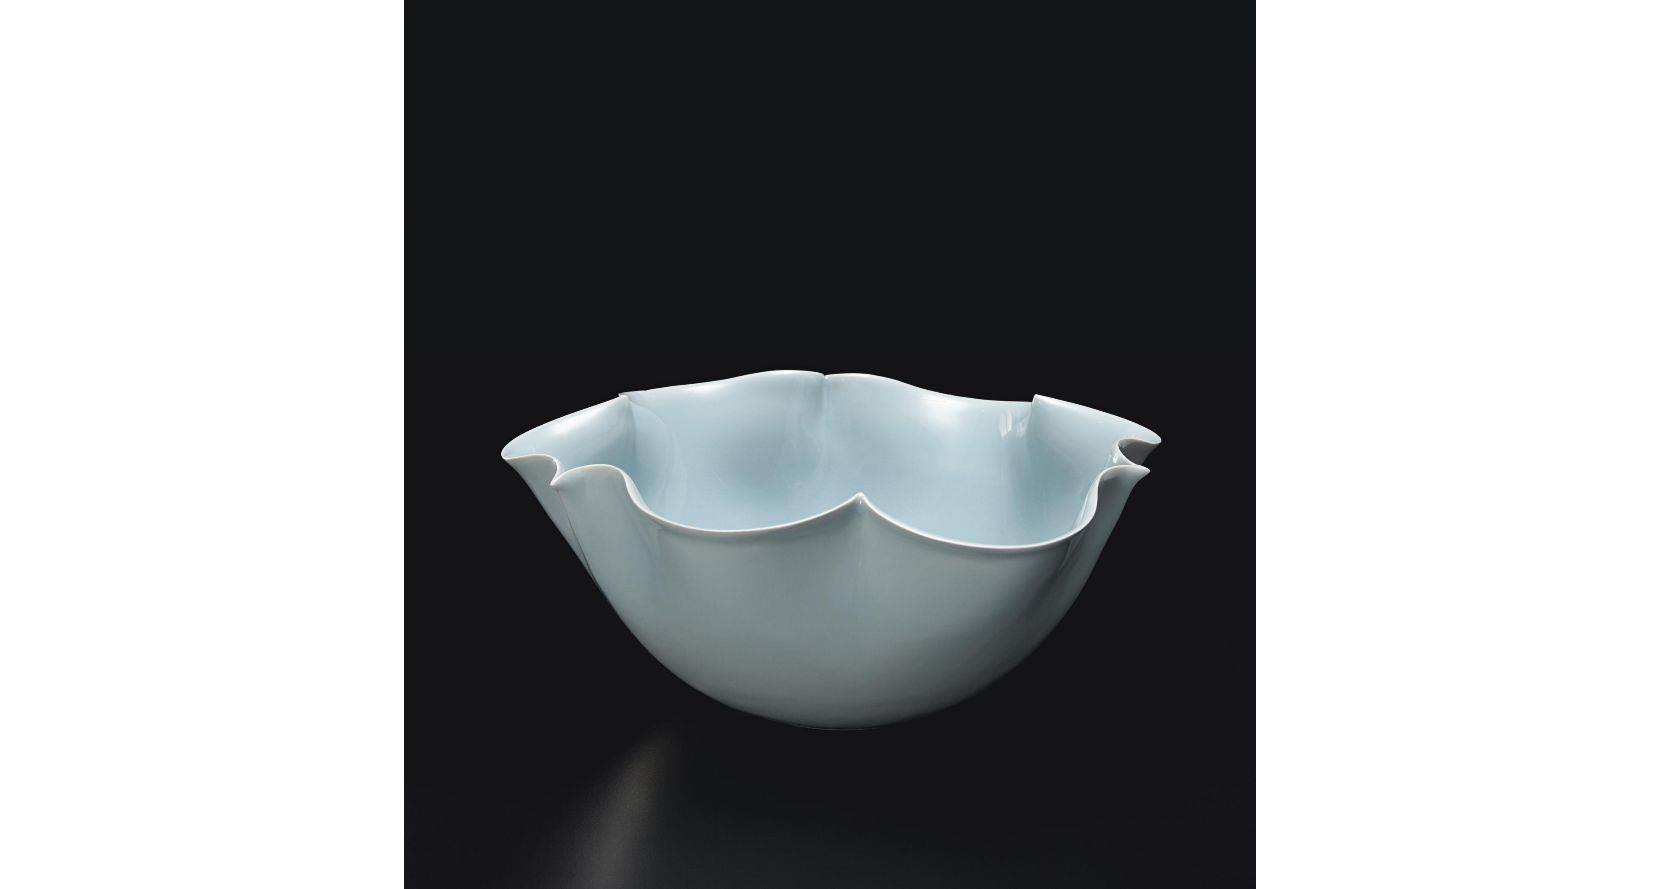 SHINOBU KAWASE 'Soro' bowl, 2010 Porcelain, celadon glaze. 5 1/2 in (14 cm) high, 12 7/8 in (32.8 cm) wide With original signed wooden box.